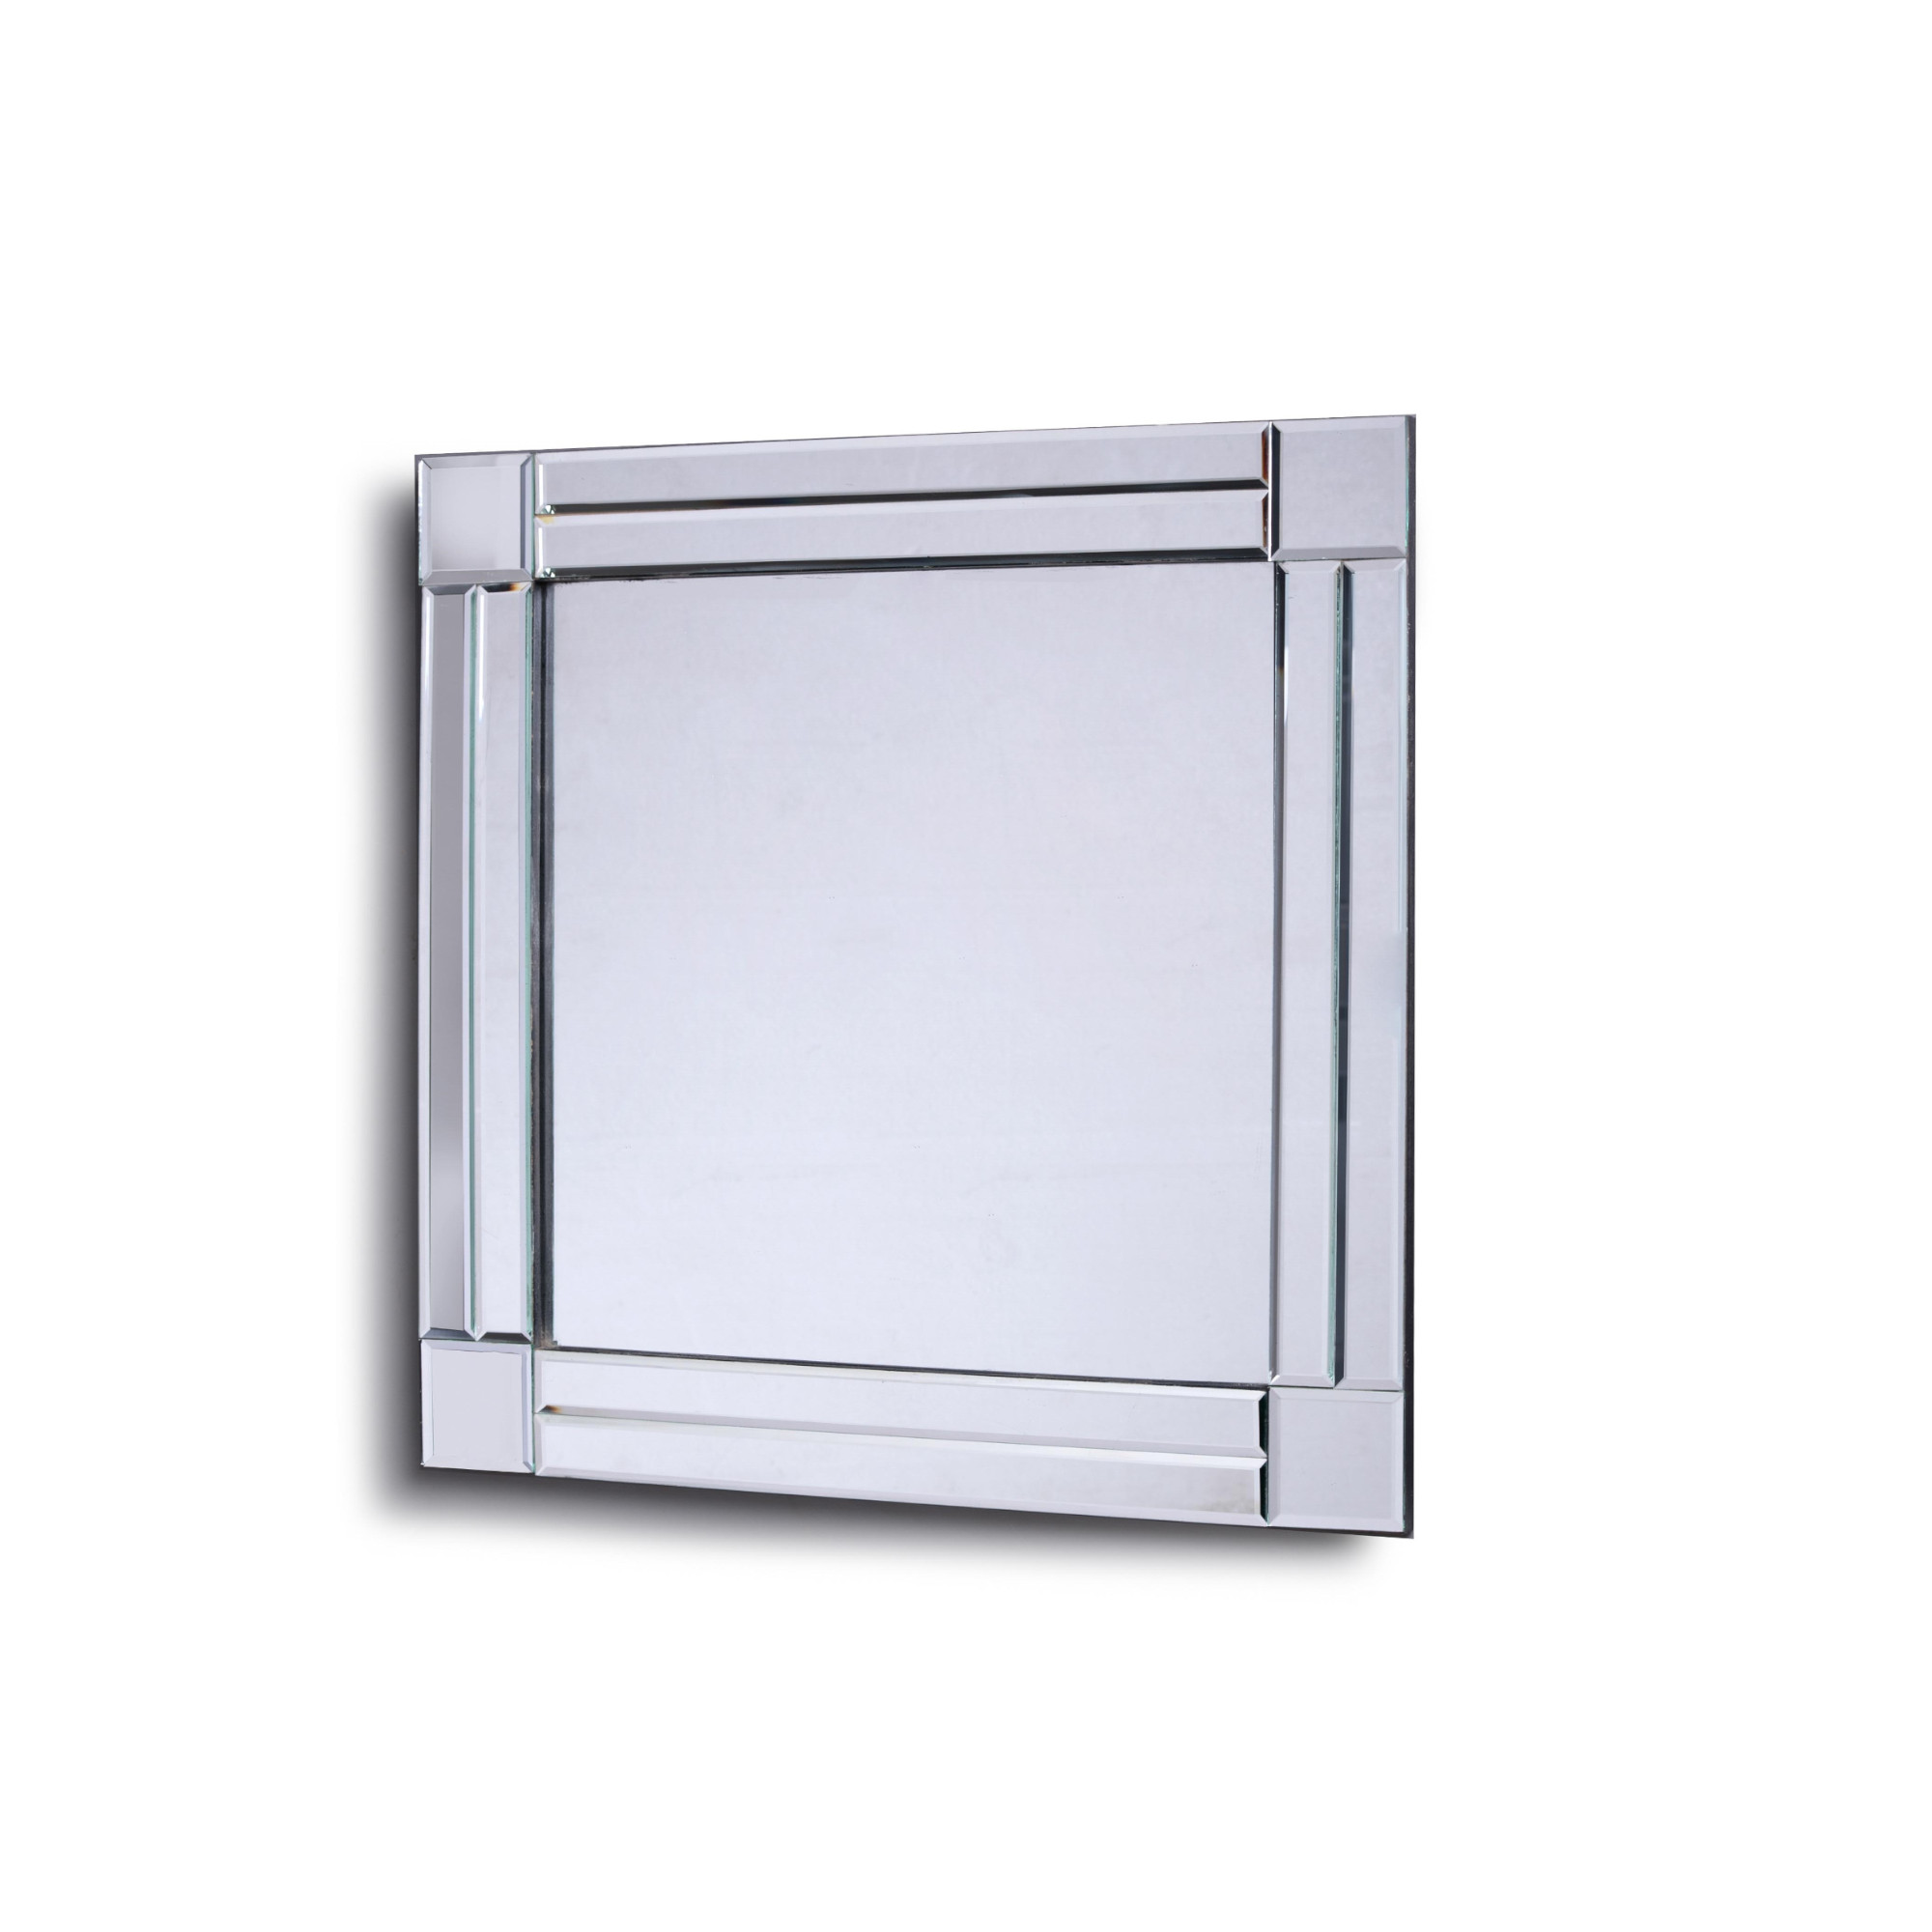 CLASSIC Mirrored Wall Mirror